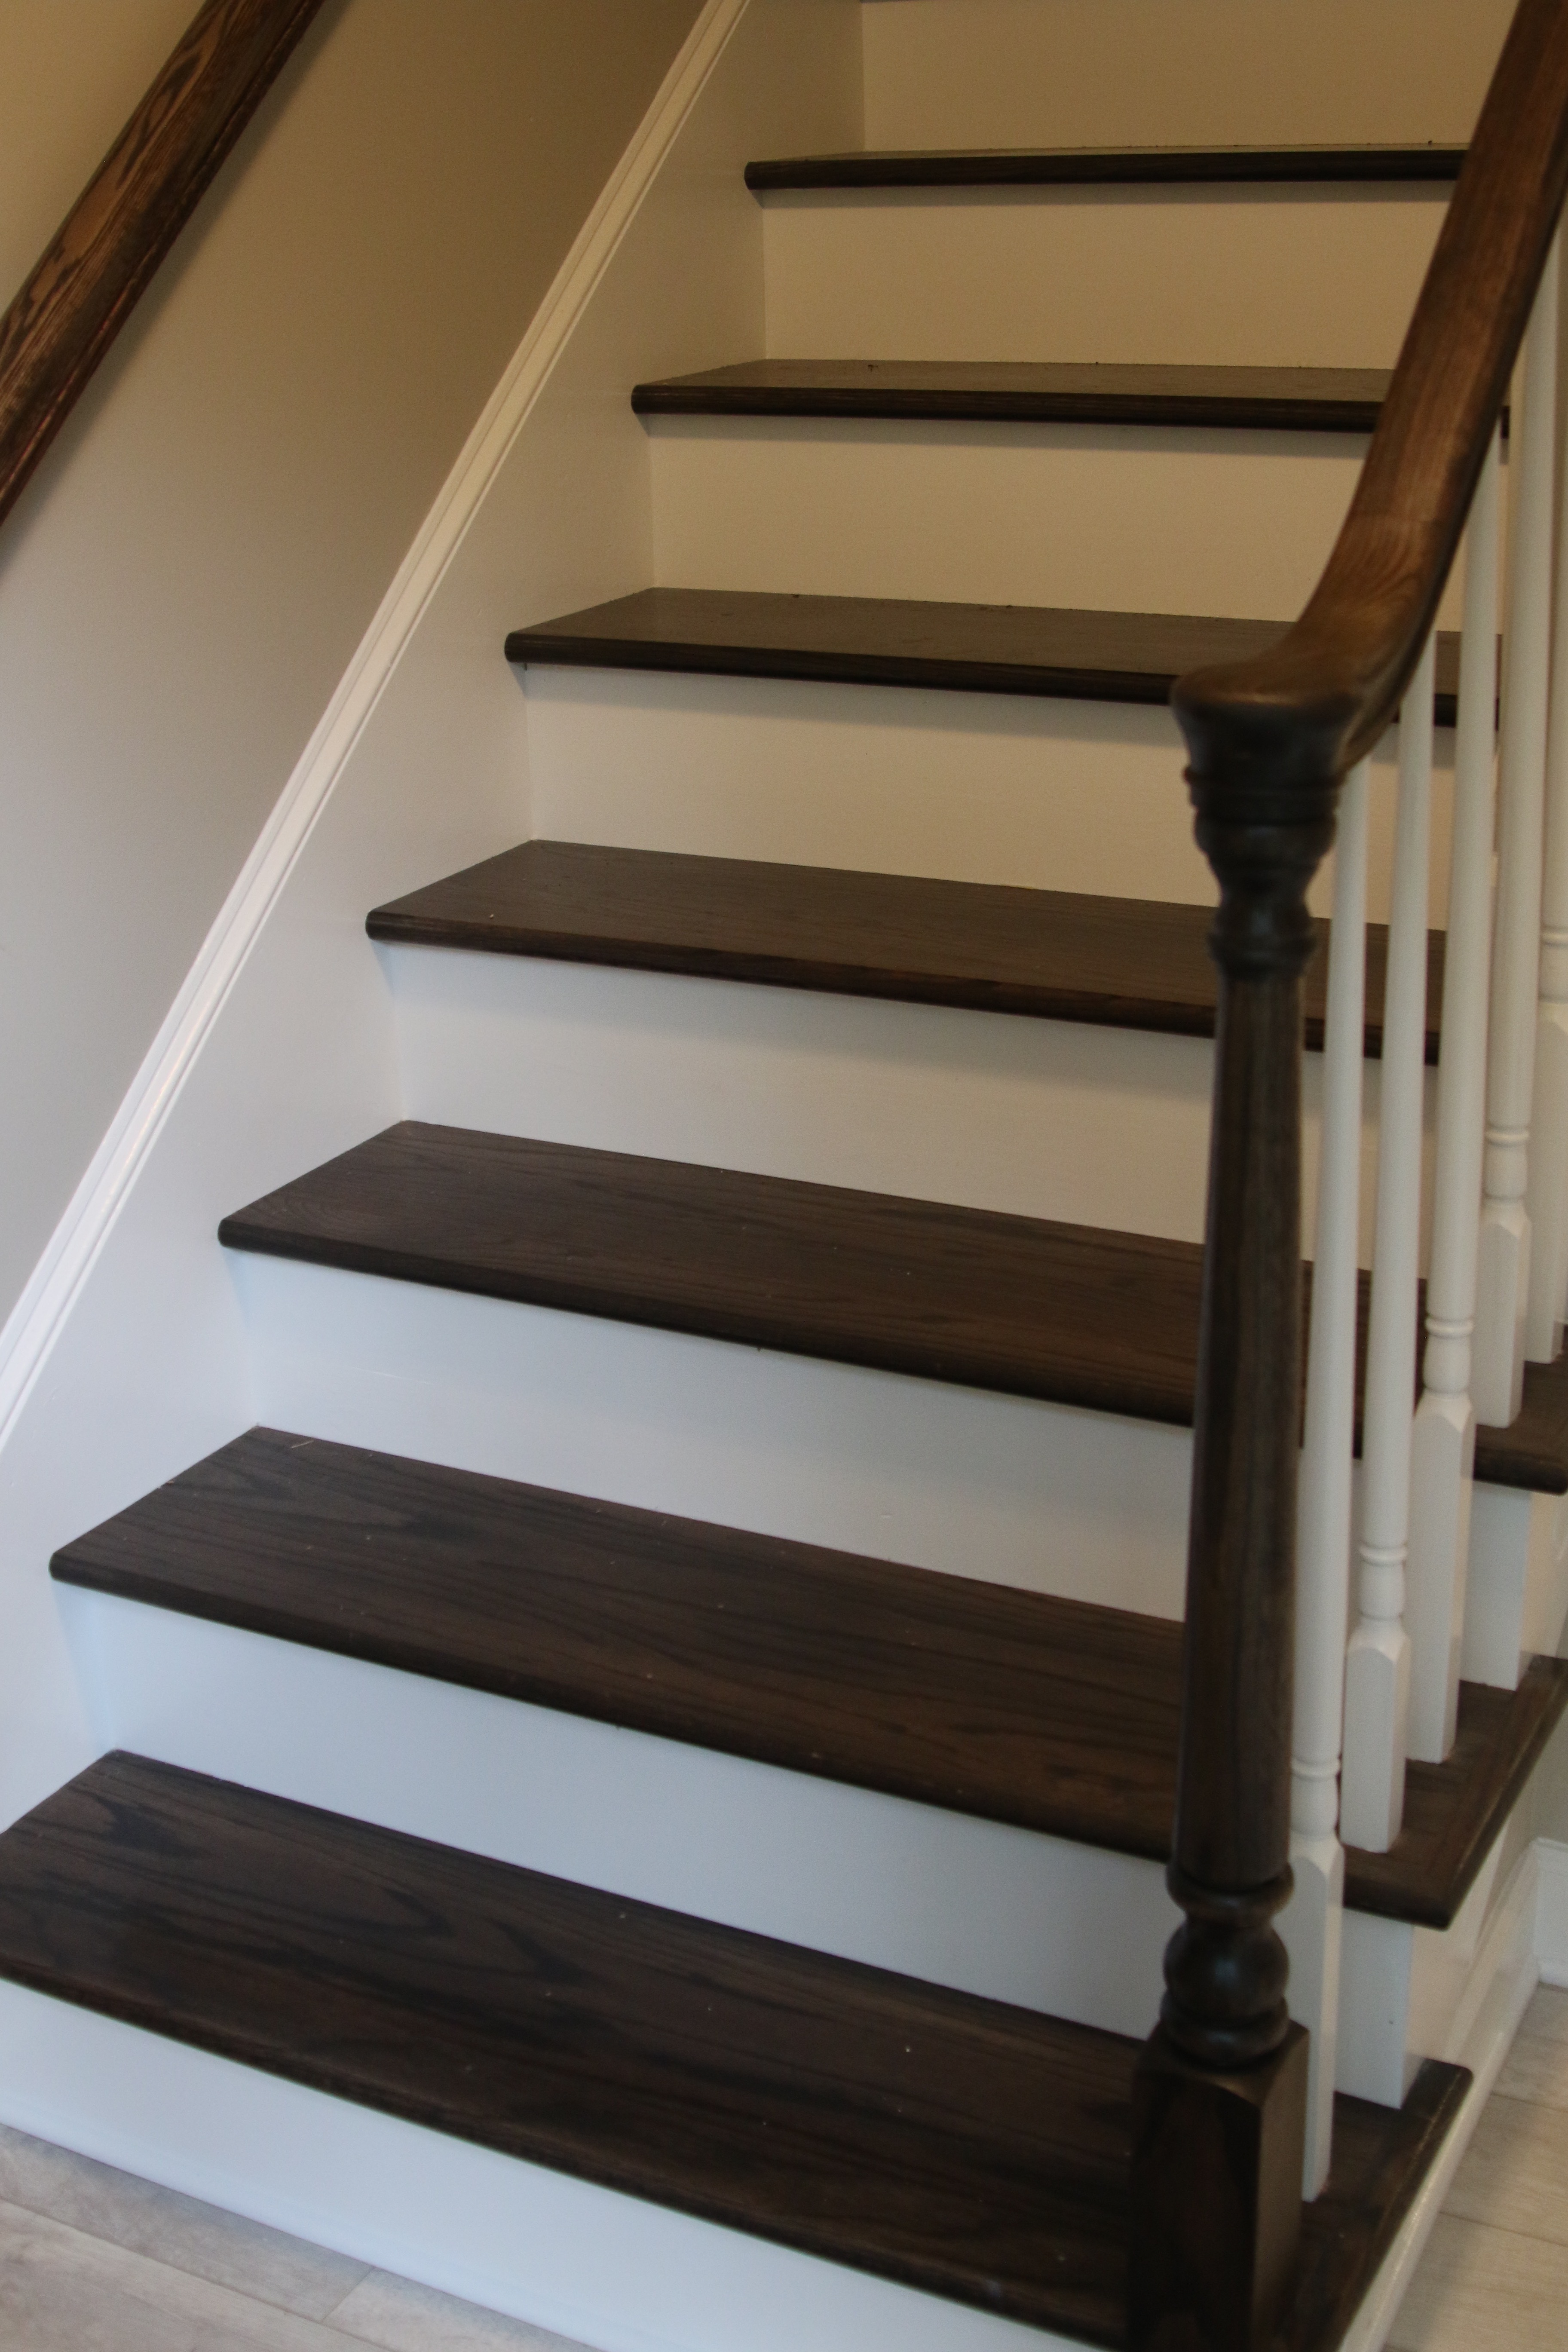 Stairs-squashed